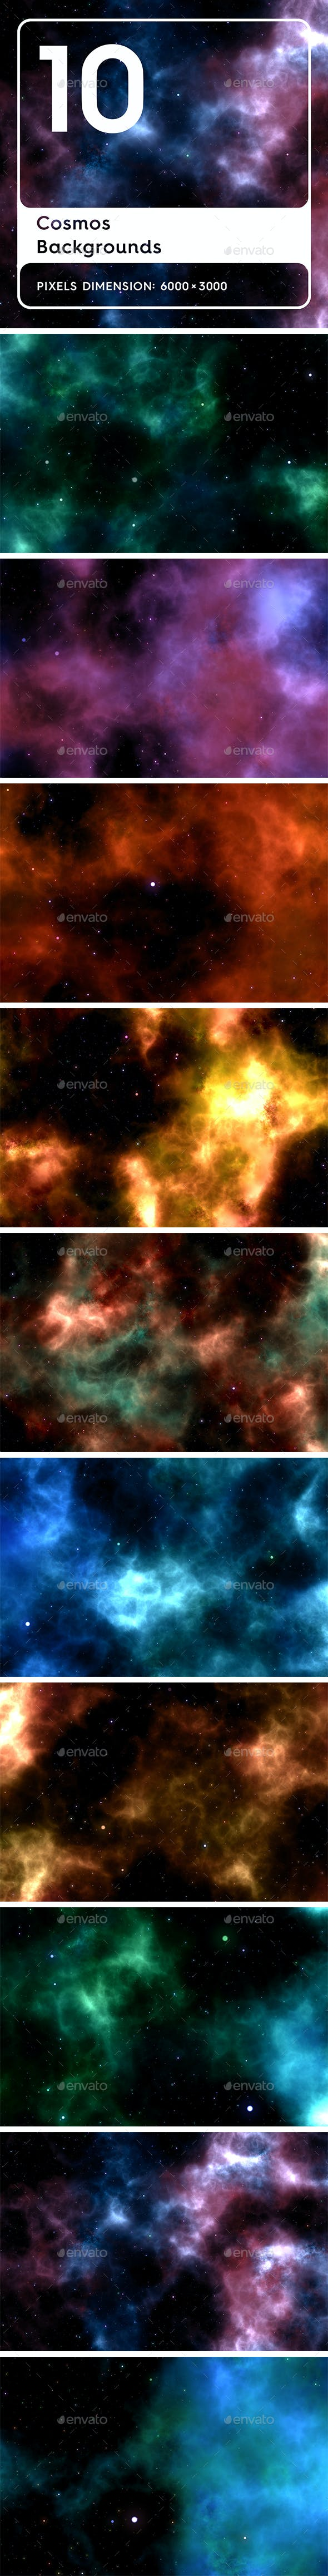 20 Cosmos Backgrounds - 3DOcean Item for Sale